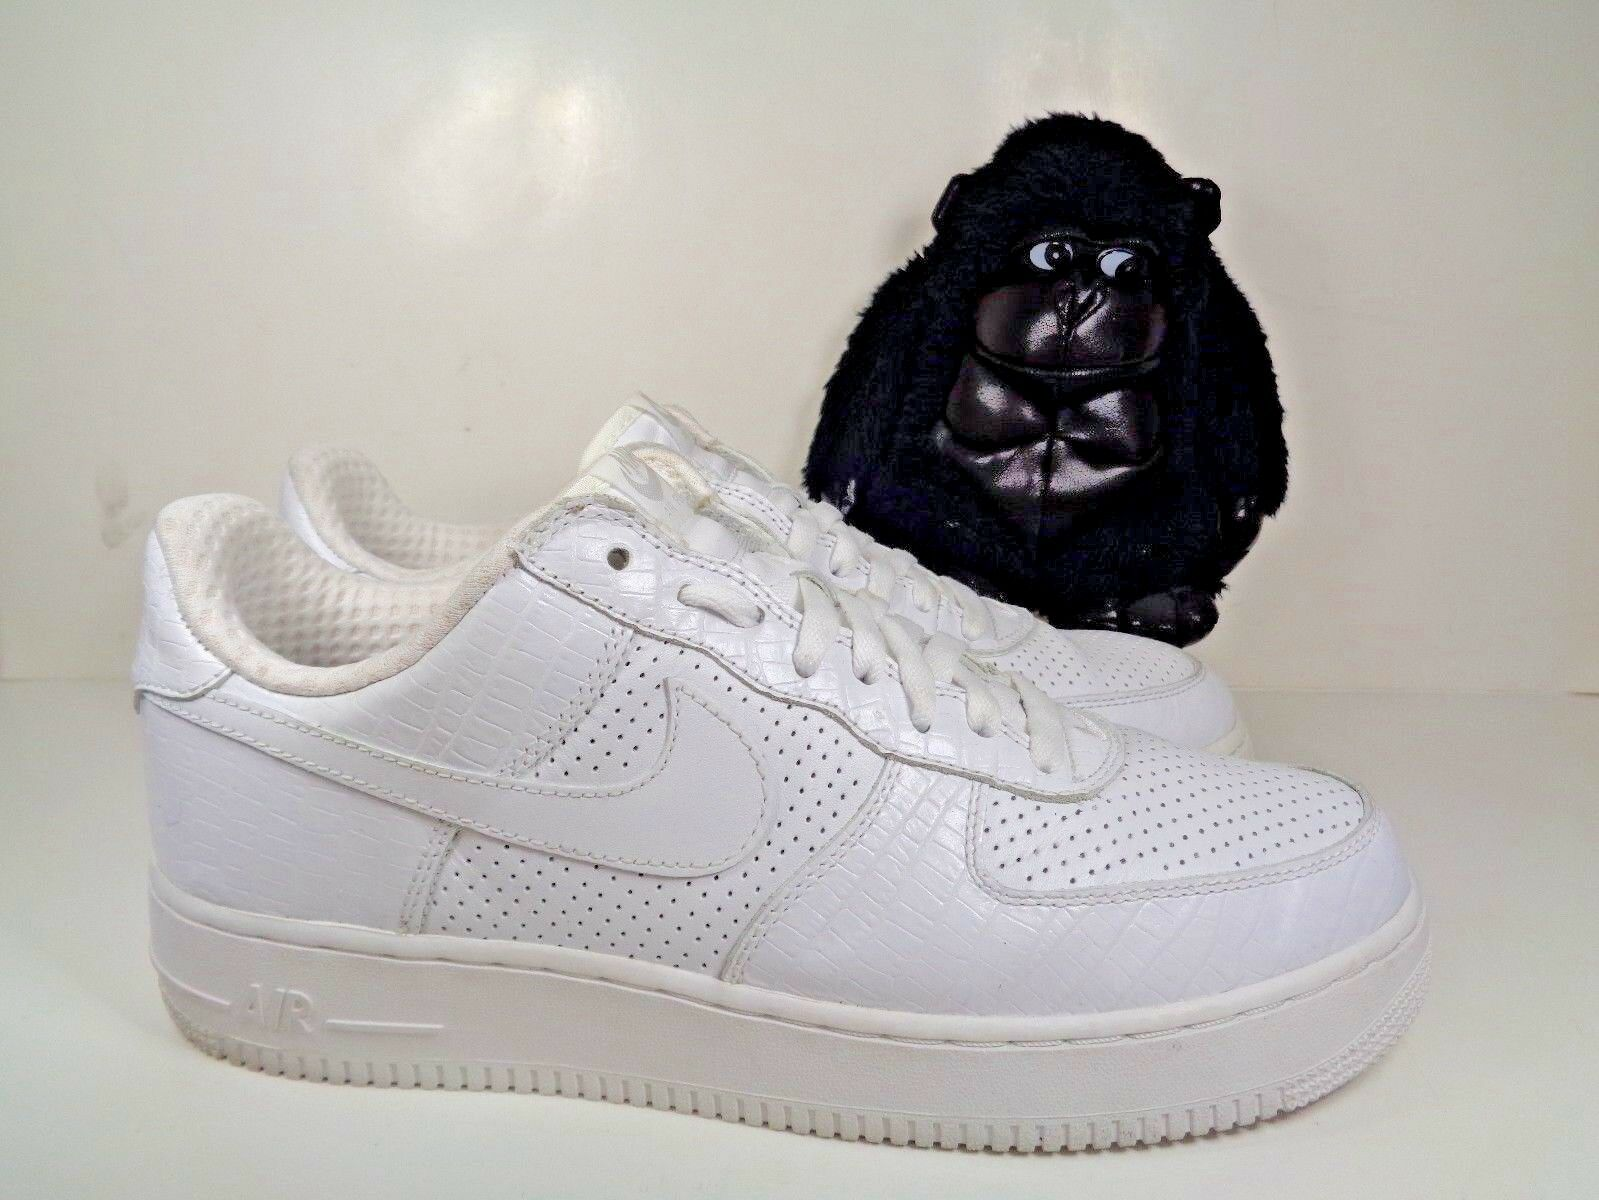 Mens Nike Air Force 1 Supreme Crocodile Croc shoes size 11 US 309096-112 2005